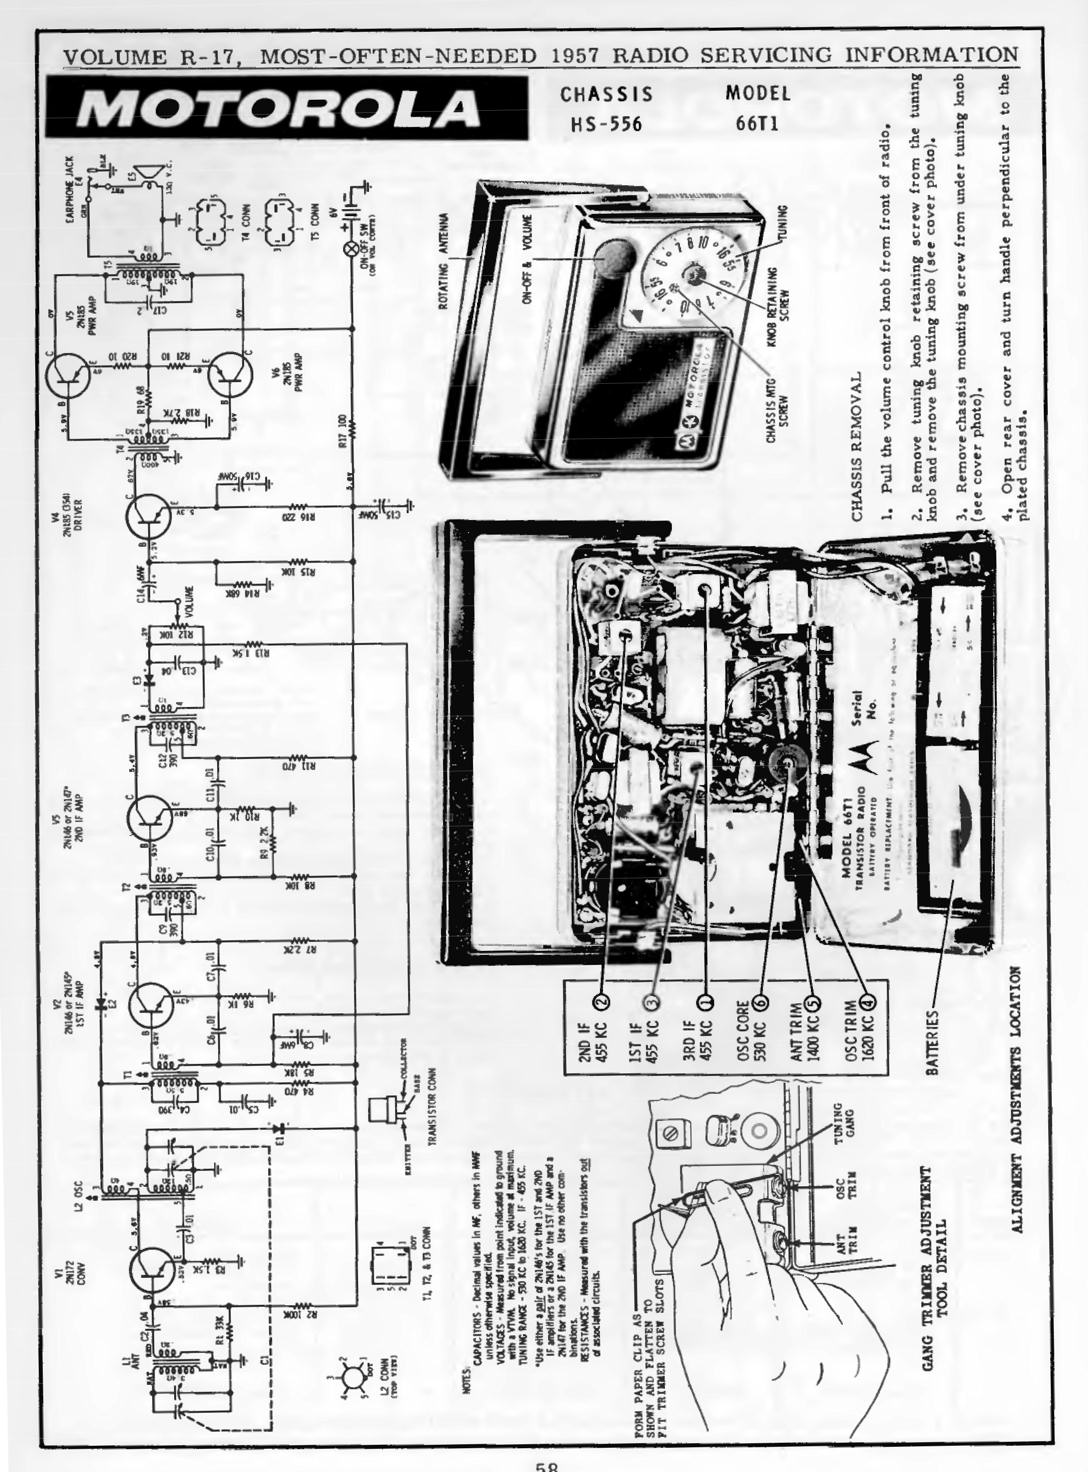 6c621 Lighter Repair Manual For All Cigarette Lighters 806360c53 furthermore How To Rewire An Antique Light Fixture as well Ford Pickup Truck Radio Antenna Kit Ford Service Replacement F100 Thru F350 moreover 91638 Power Steering Hose as well V 11. on antique auto parts